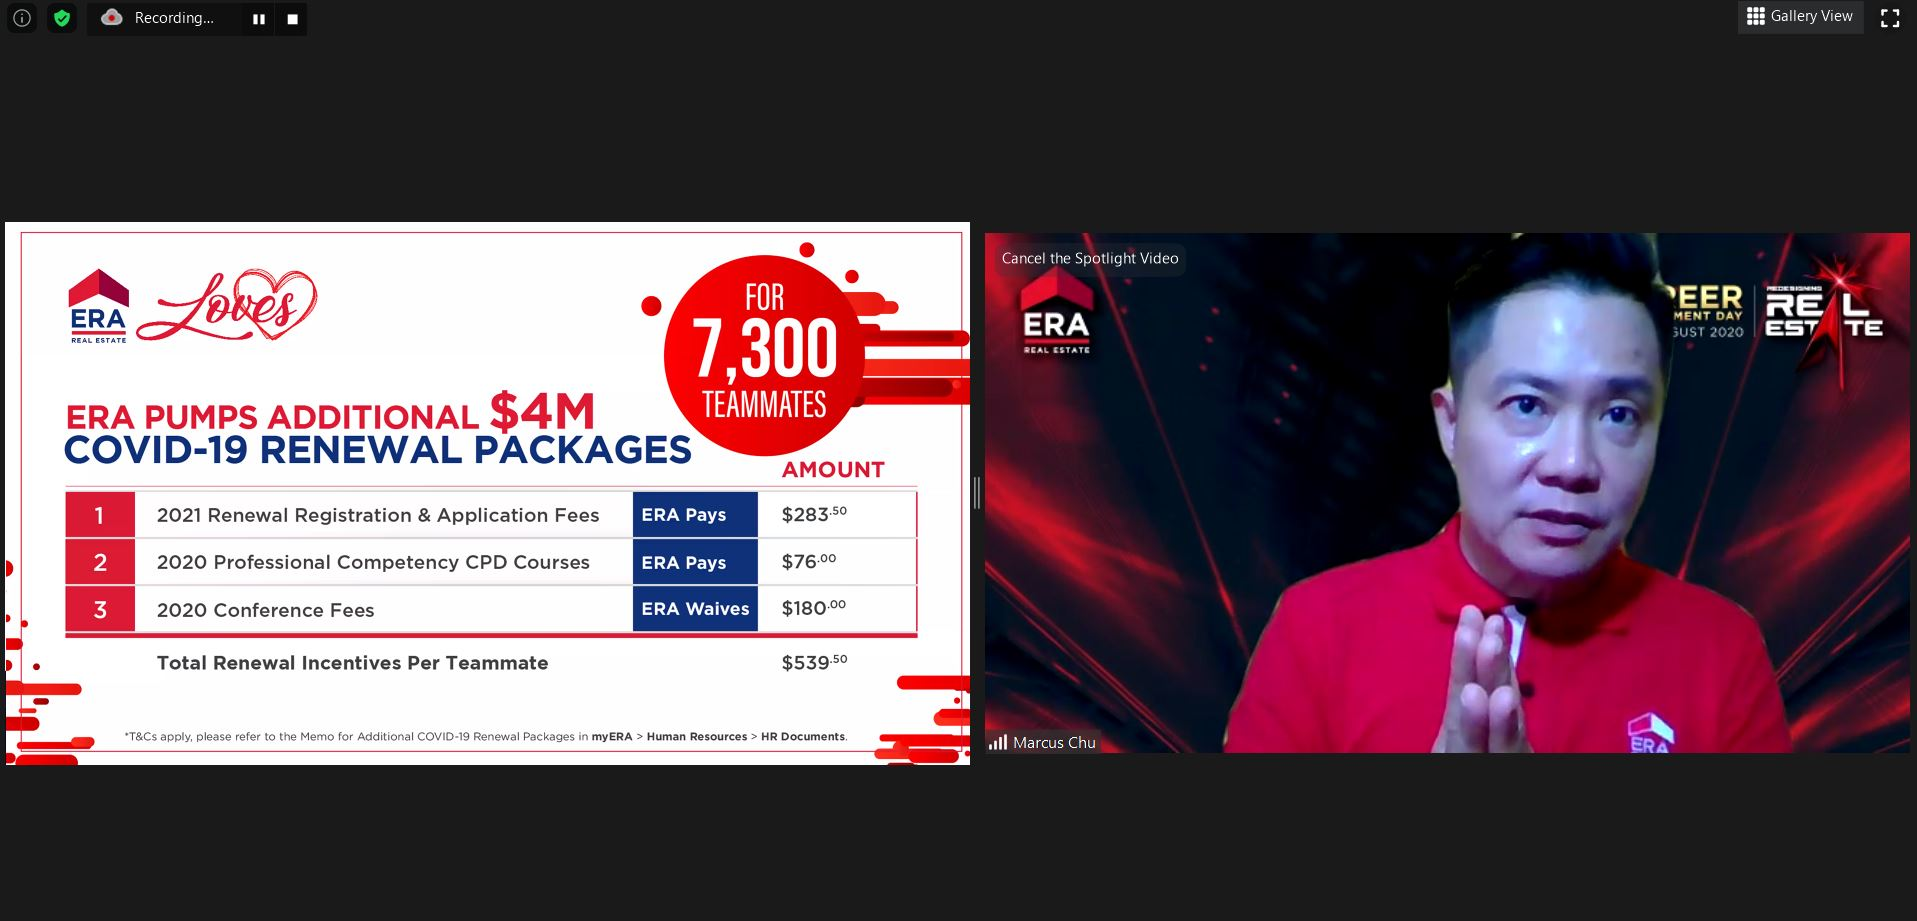 ERA Singapore Invests Additional S4 Million Renewal Packages to Help 7300 Real Estate Salespersons Beat Covid-19 Woes